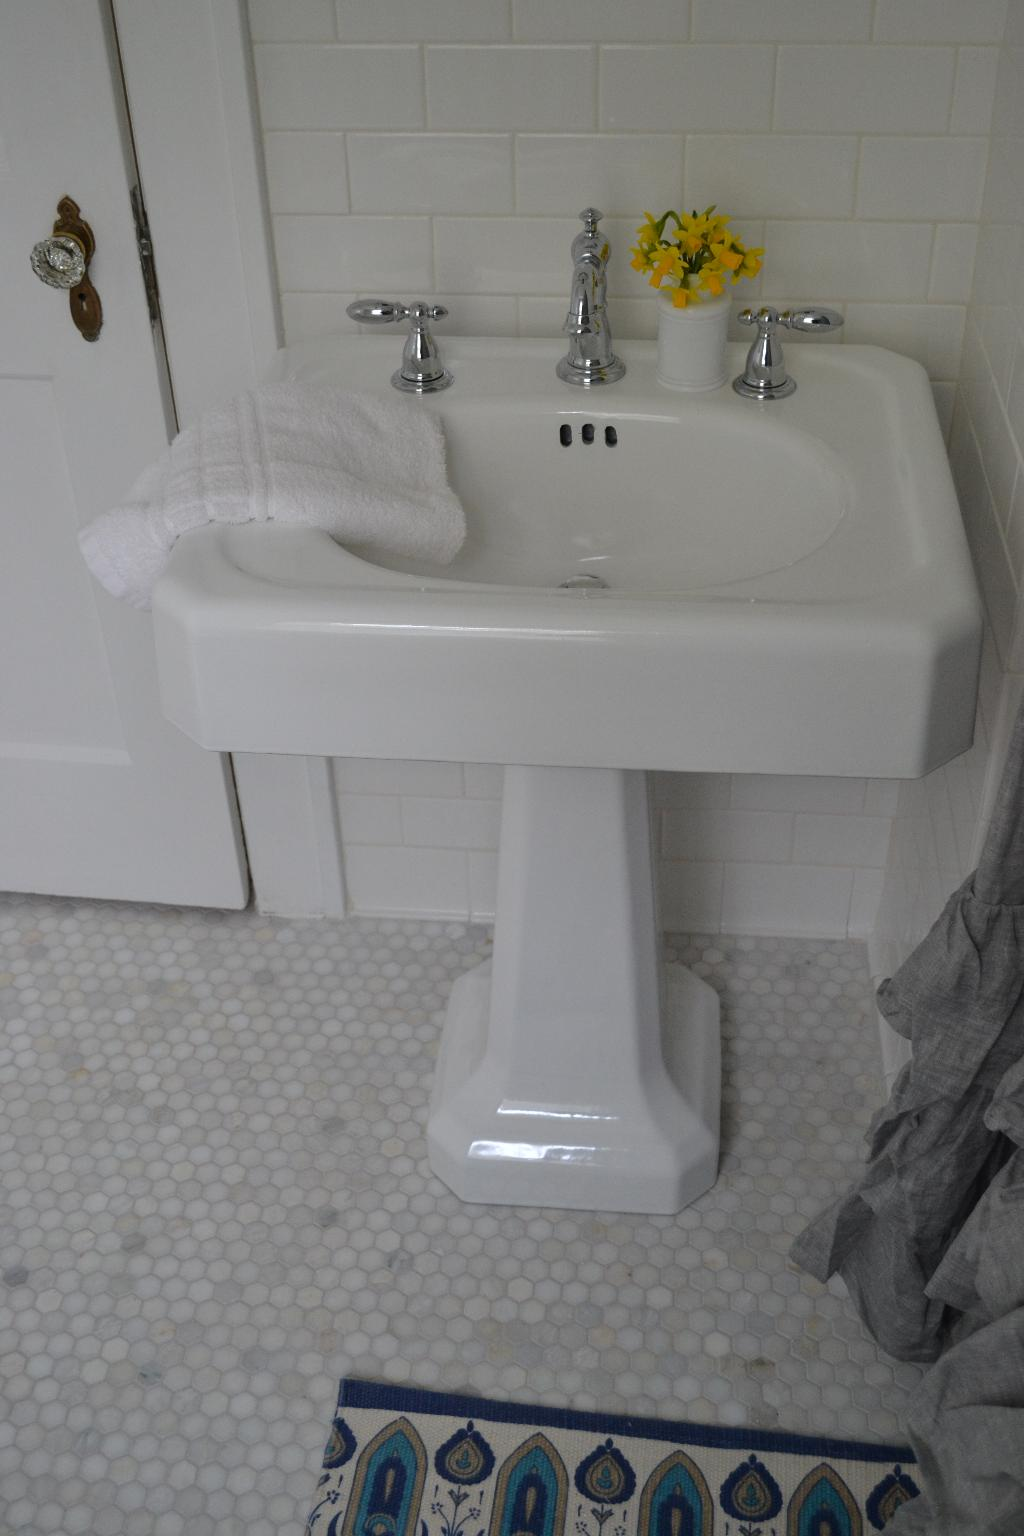 Cottage Fix - refinished vintage sink, Delta faucet, and marble hex floor tiles